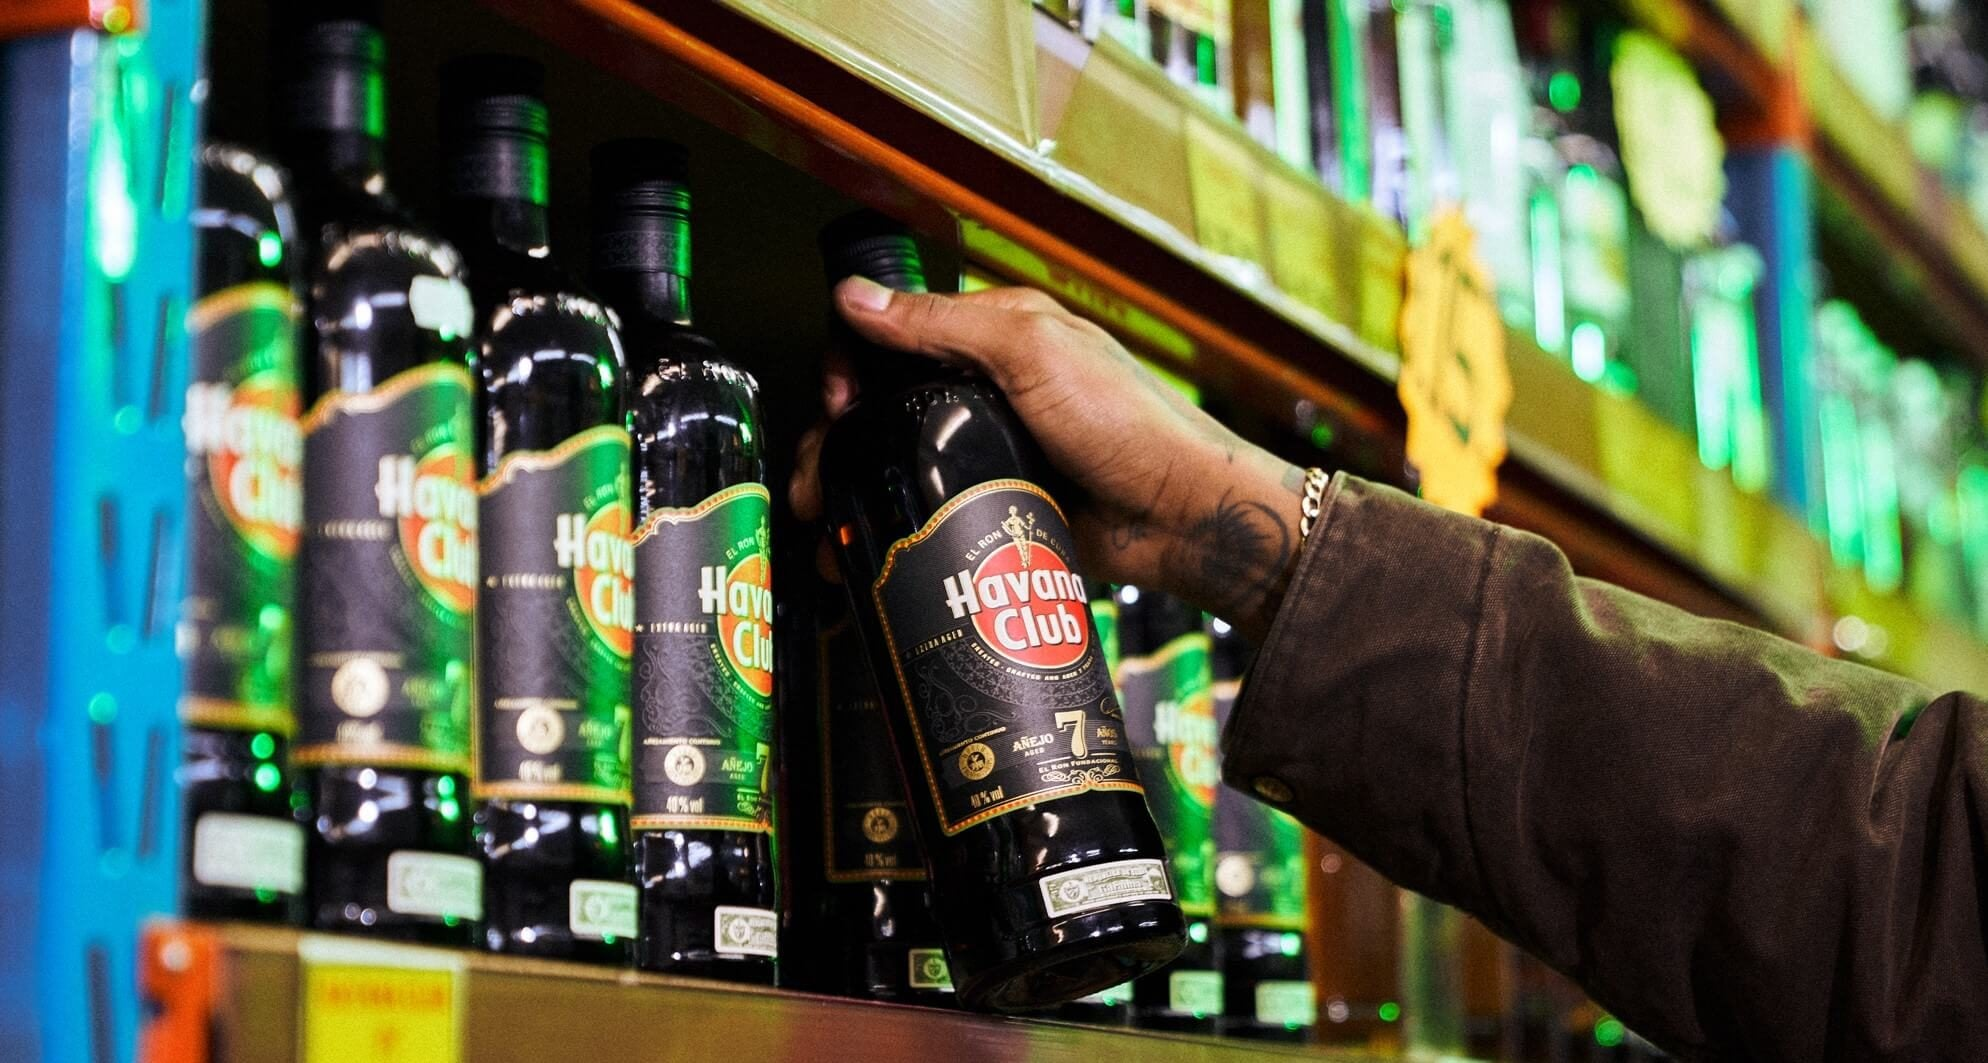 Bottles of Havana Club 7 anos on a shelf in-store